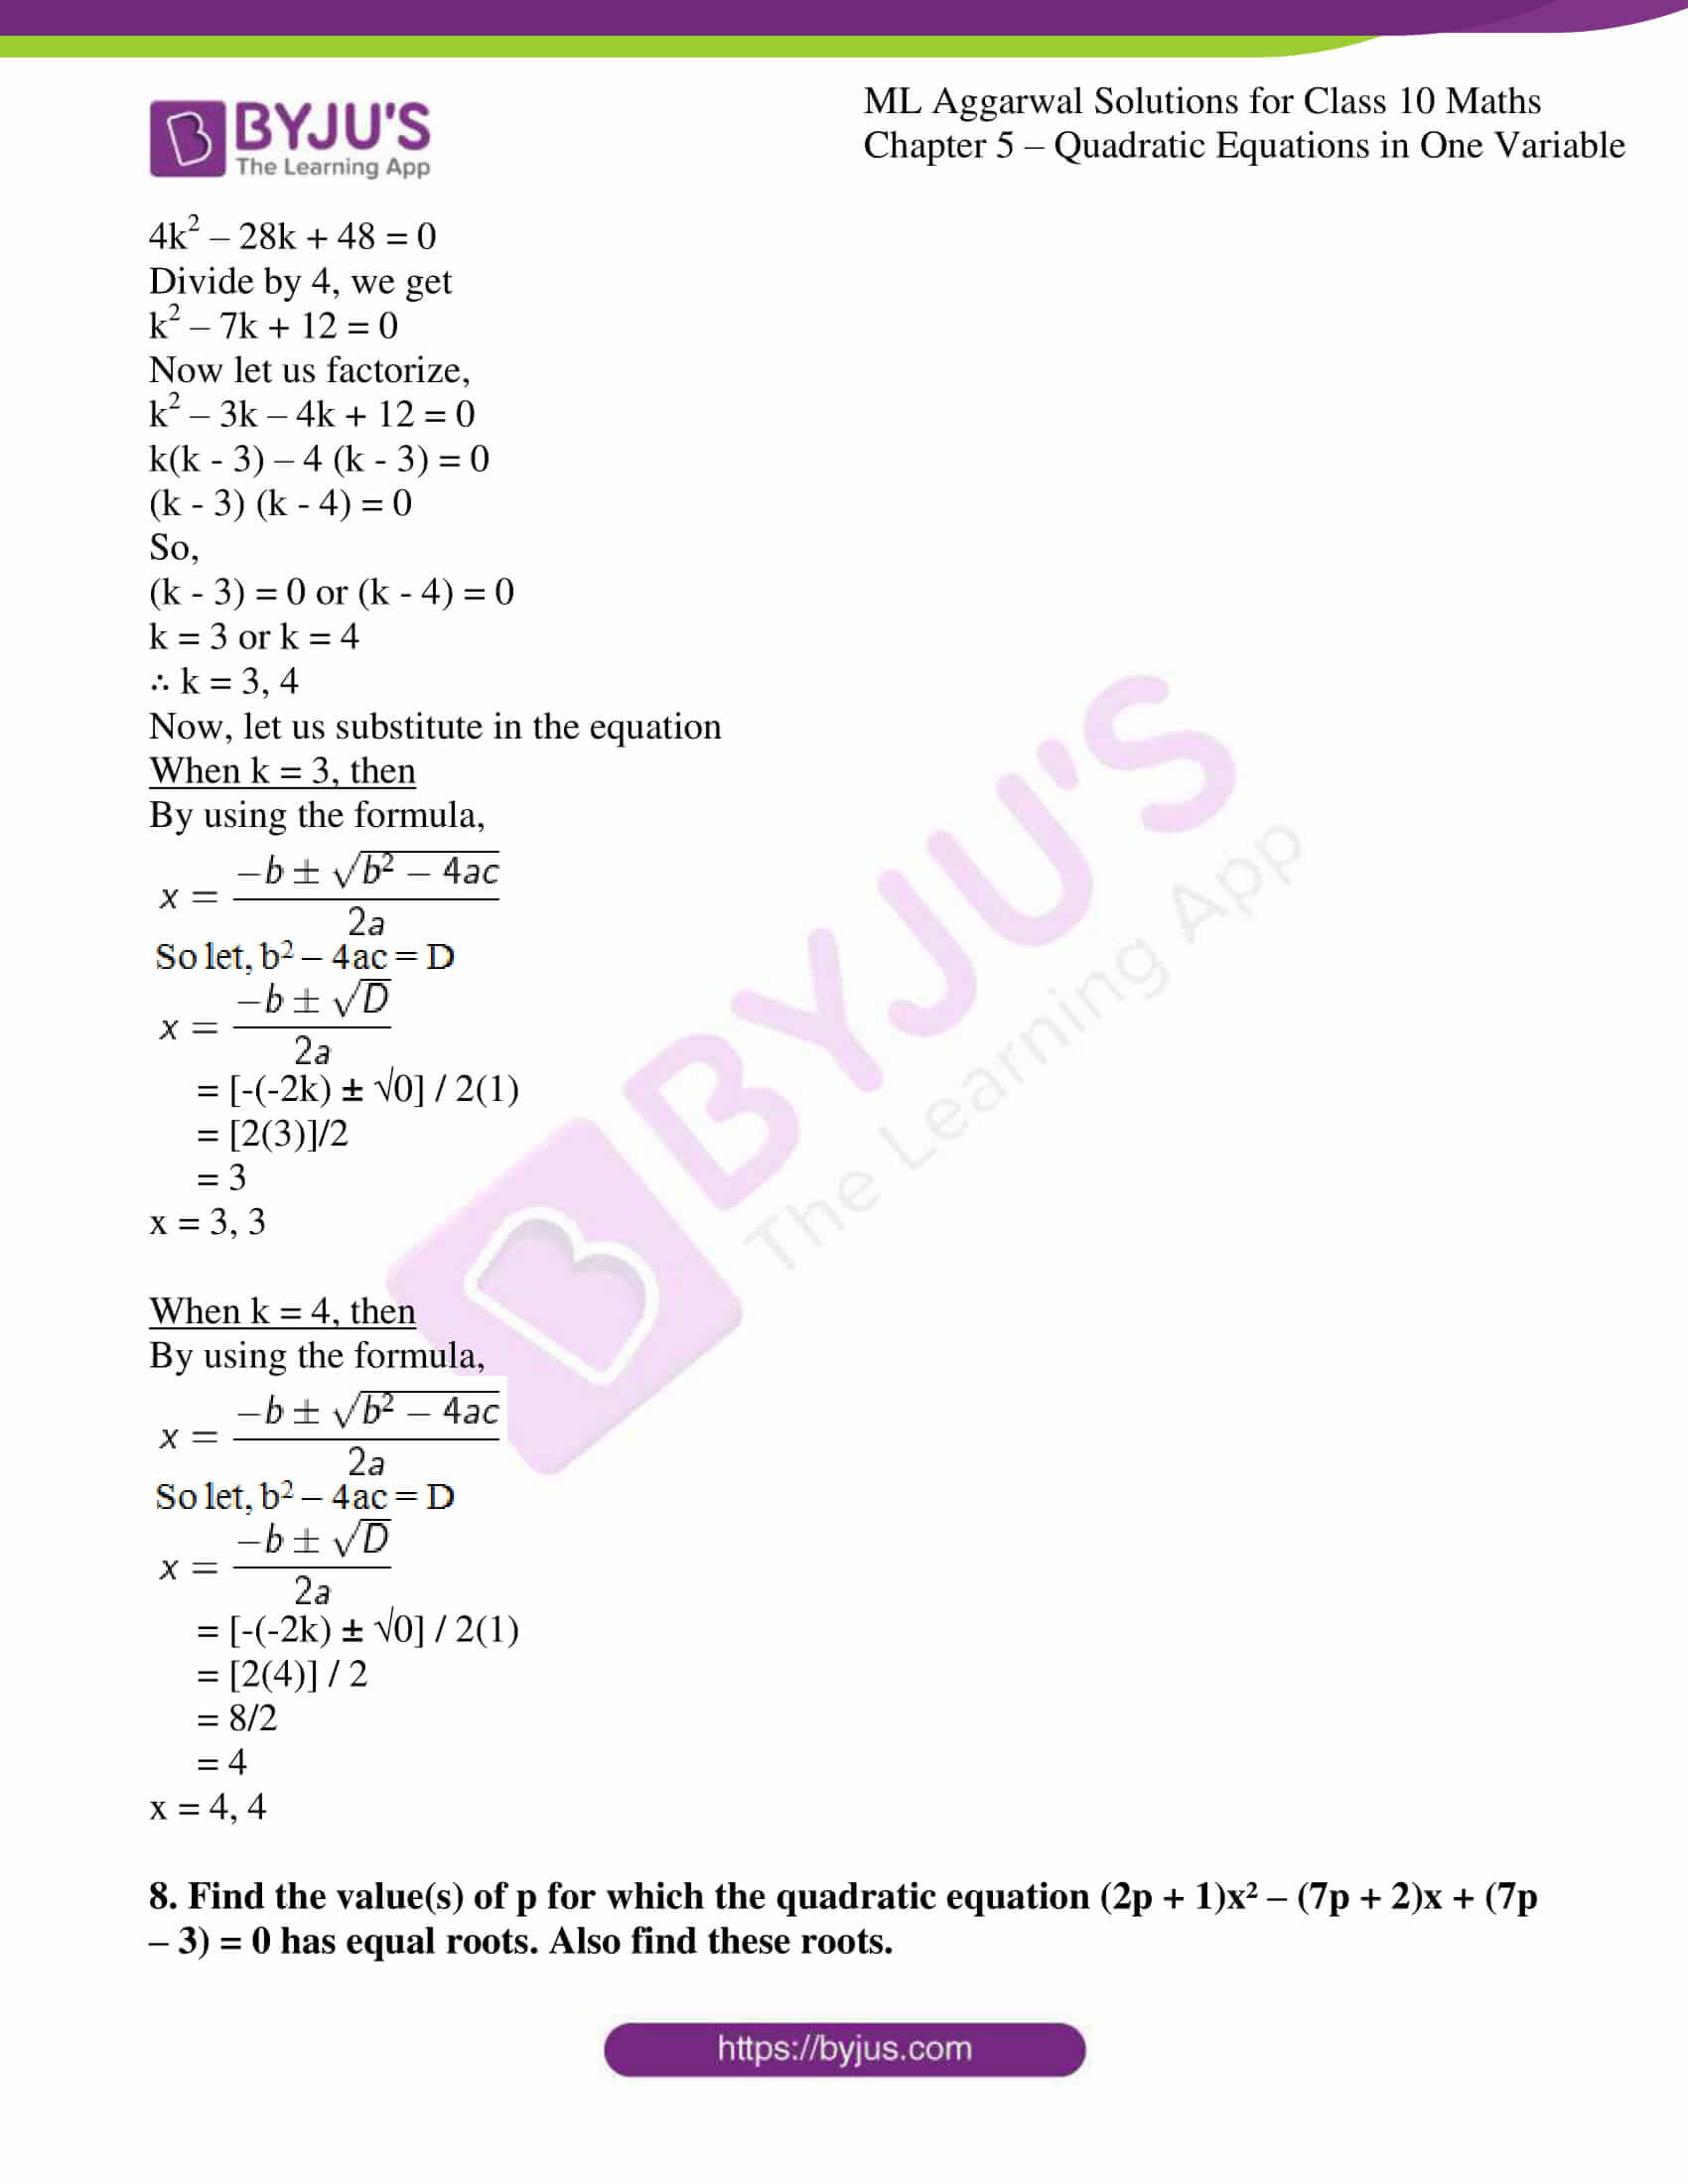 ml aggarwal solutions class 10 maths chapter 5 43